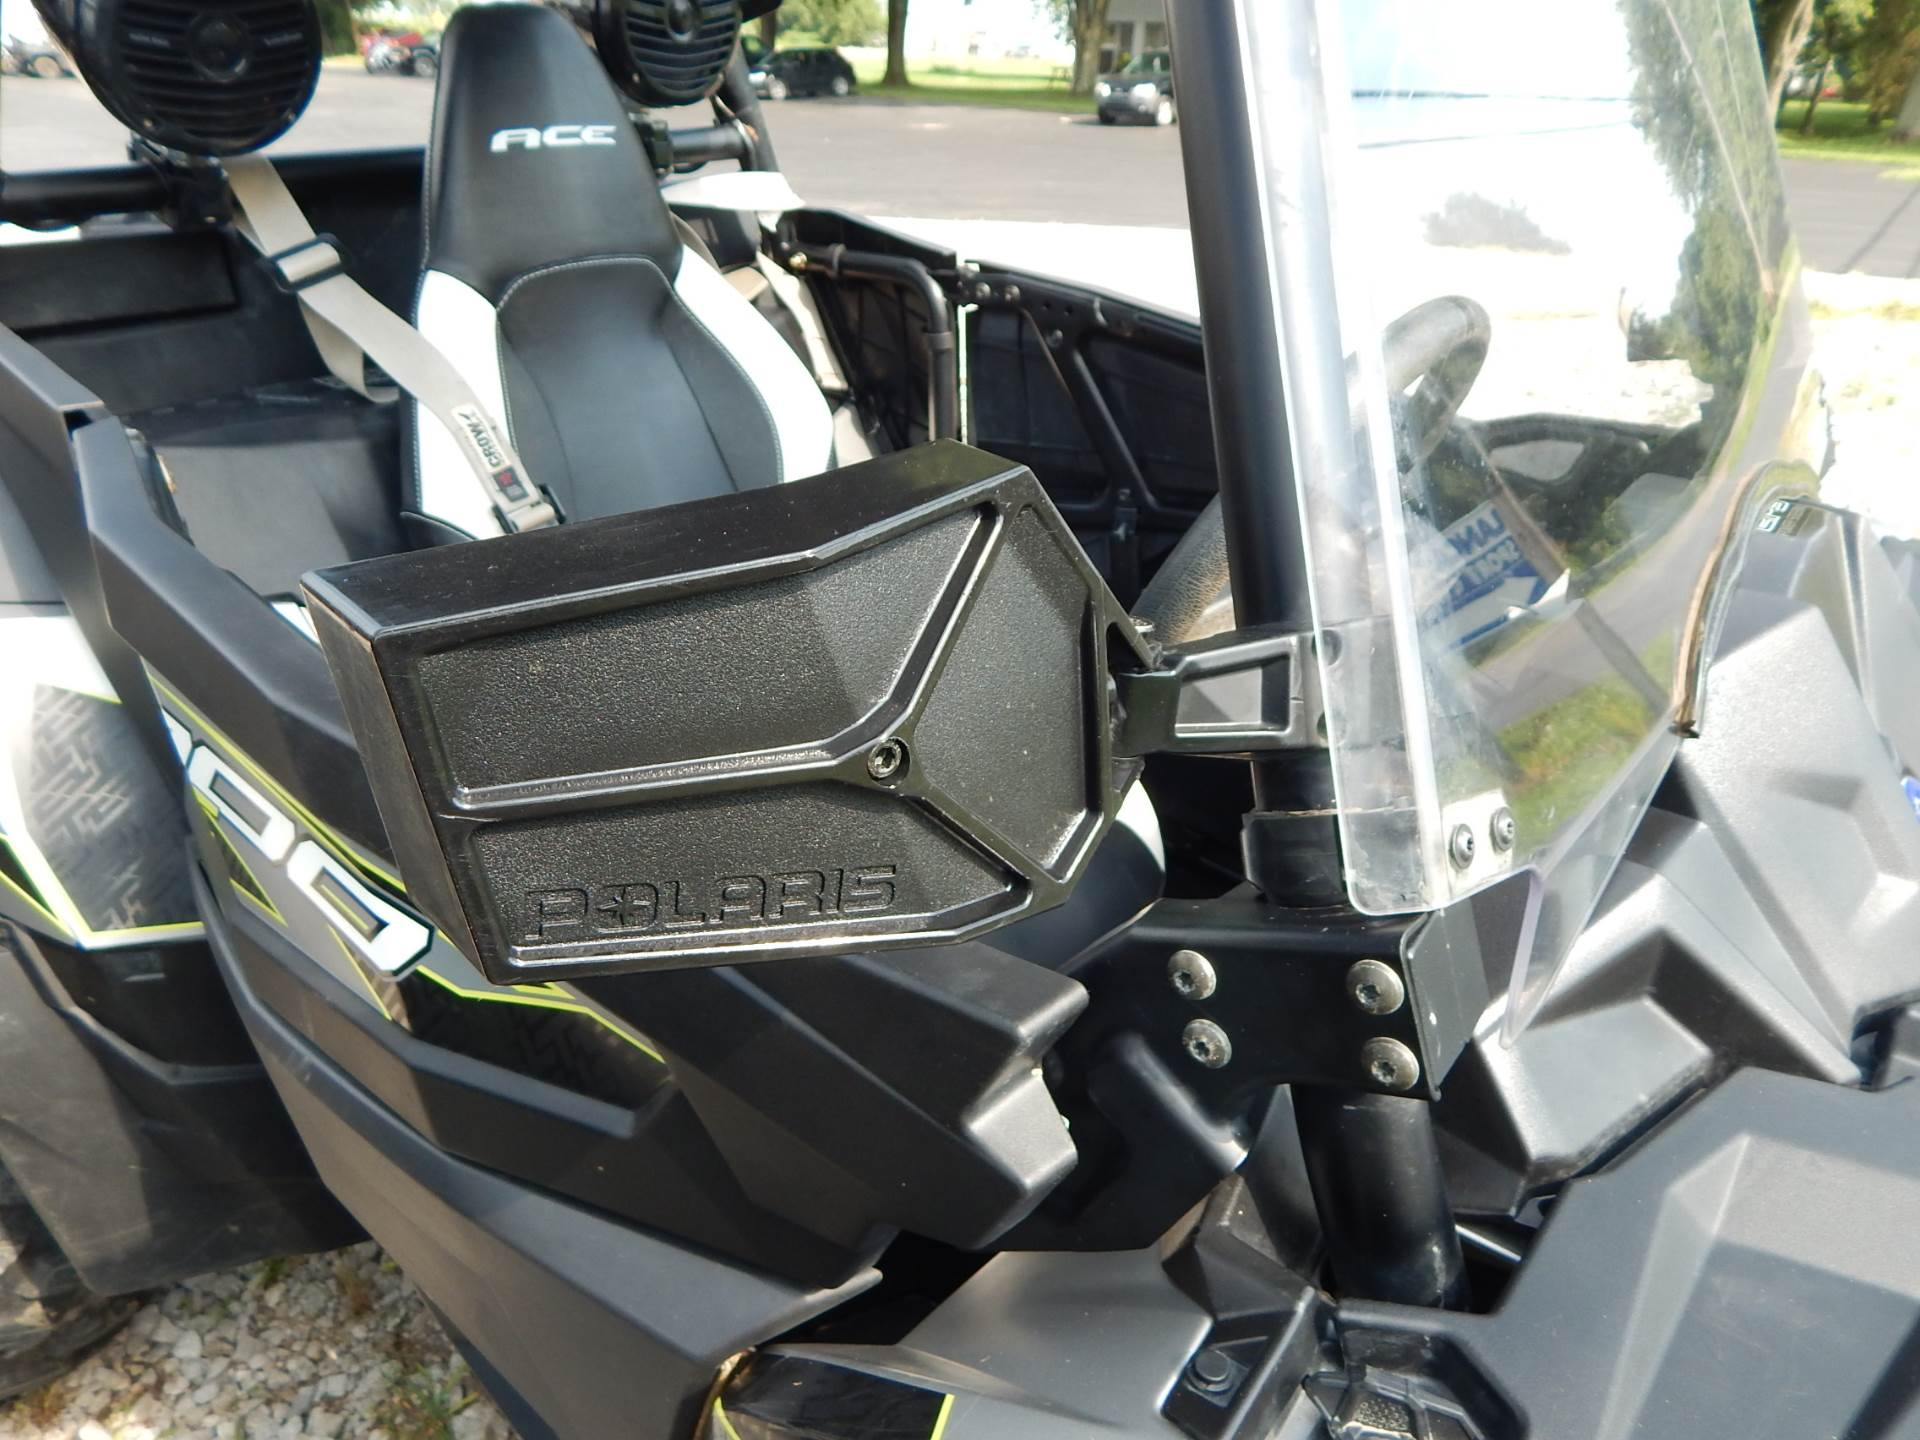 2017 Polaris Ace 900 XC in Carroll, Ohio - Photo 10